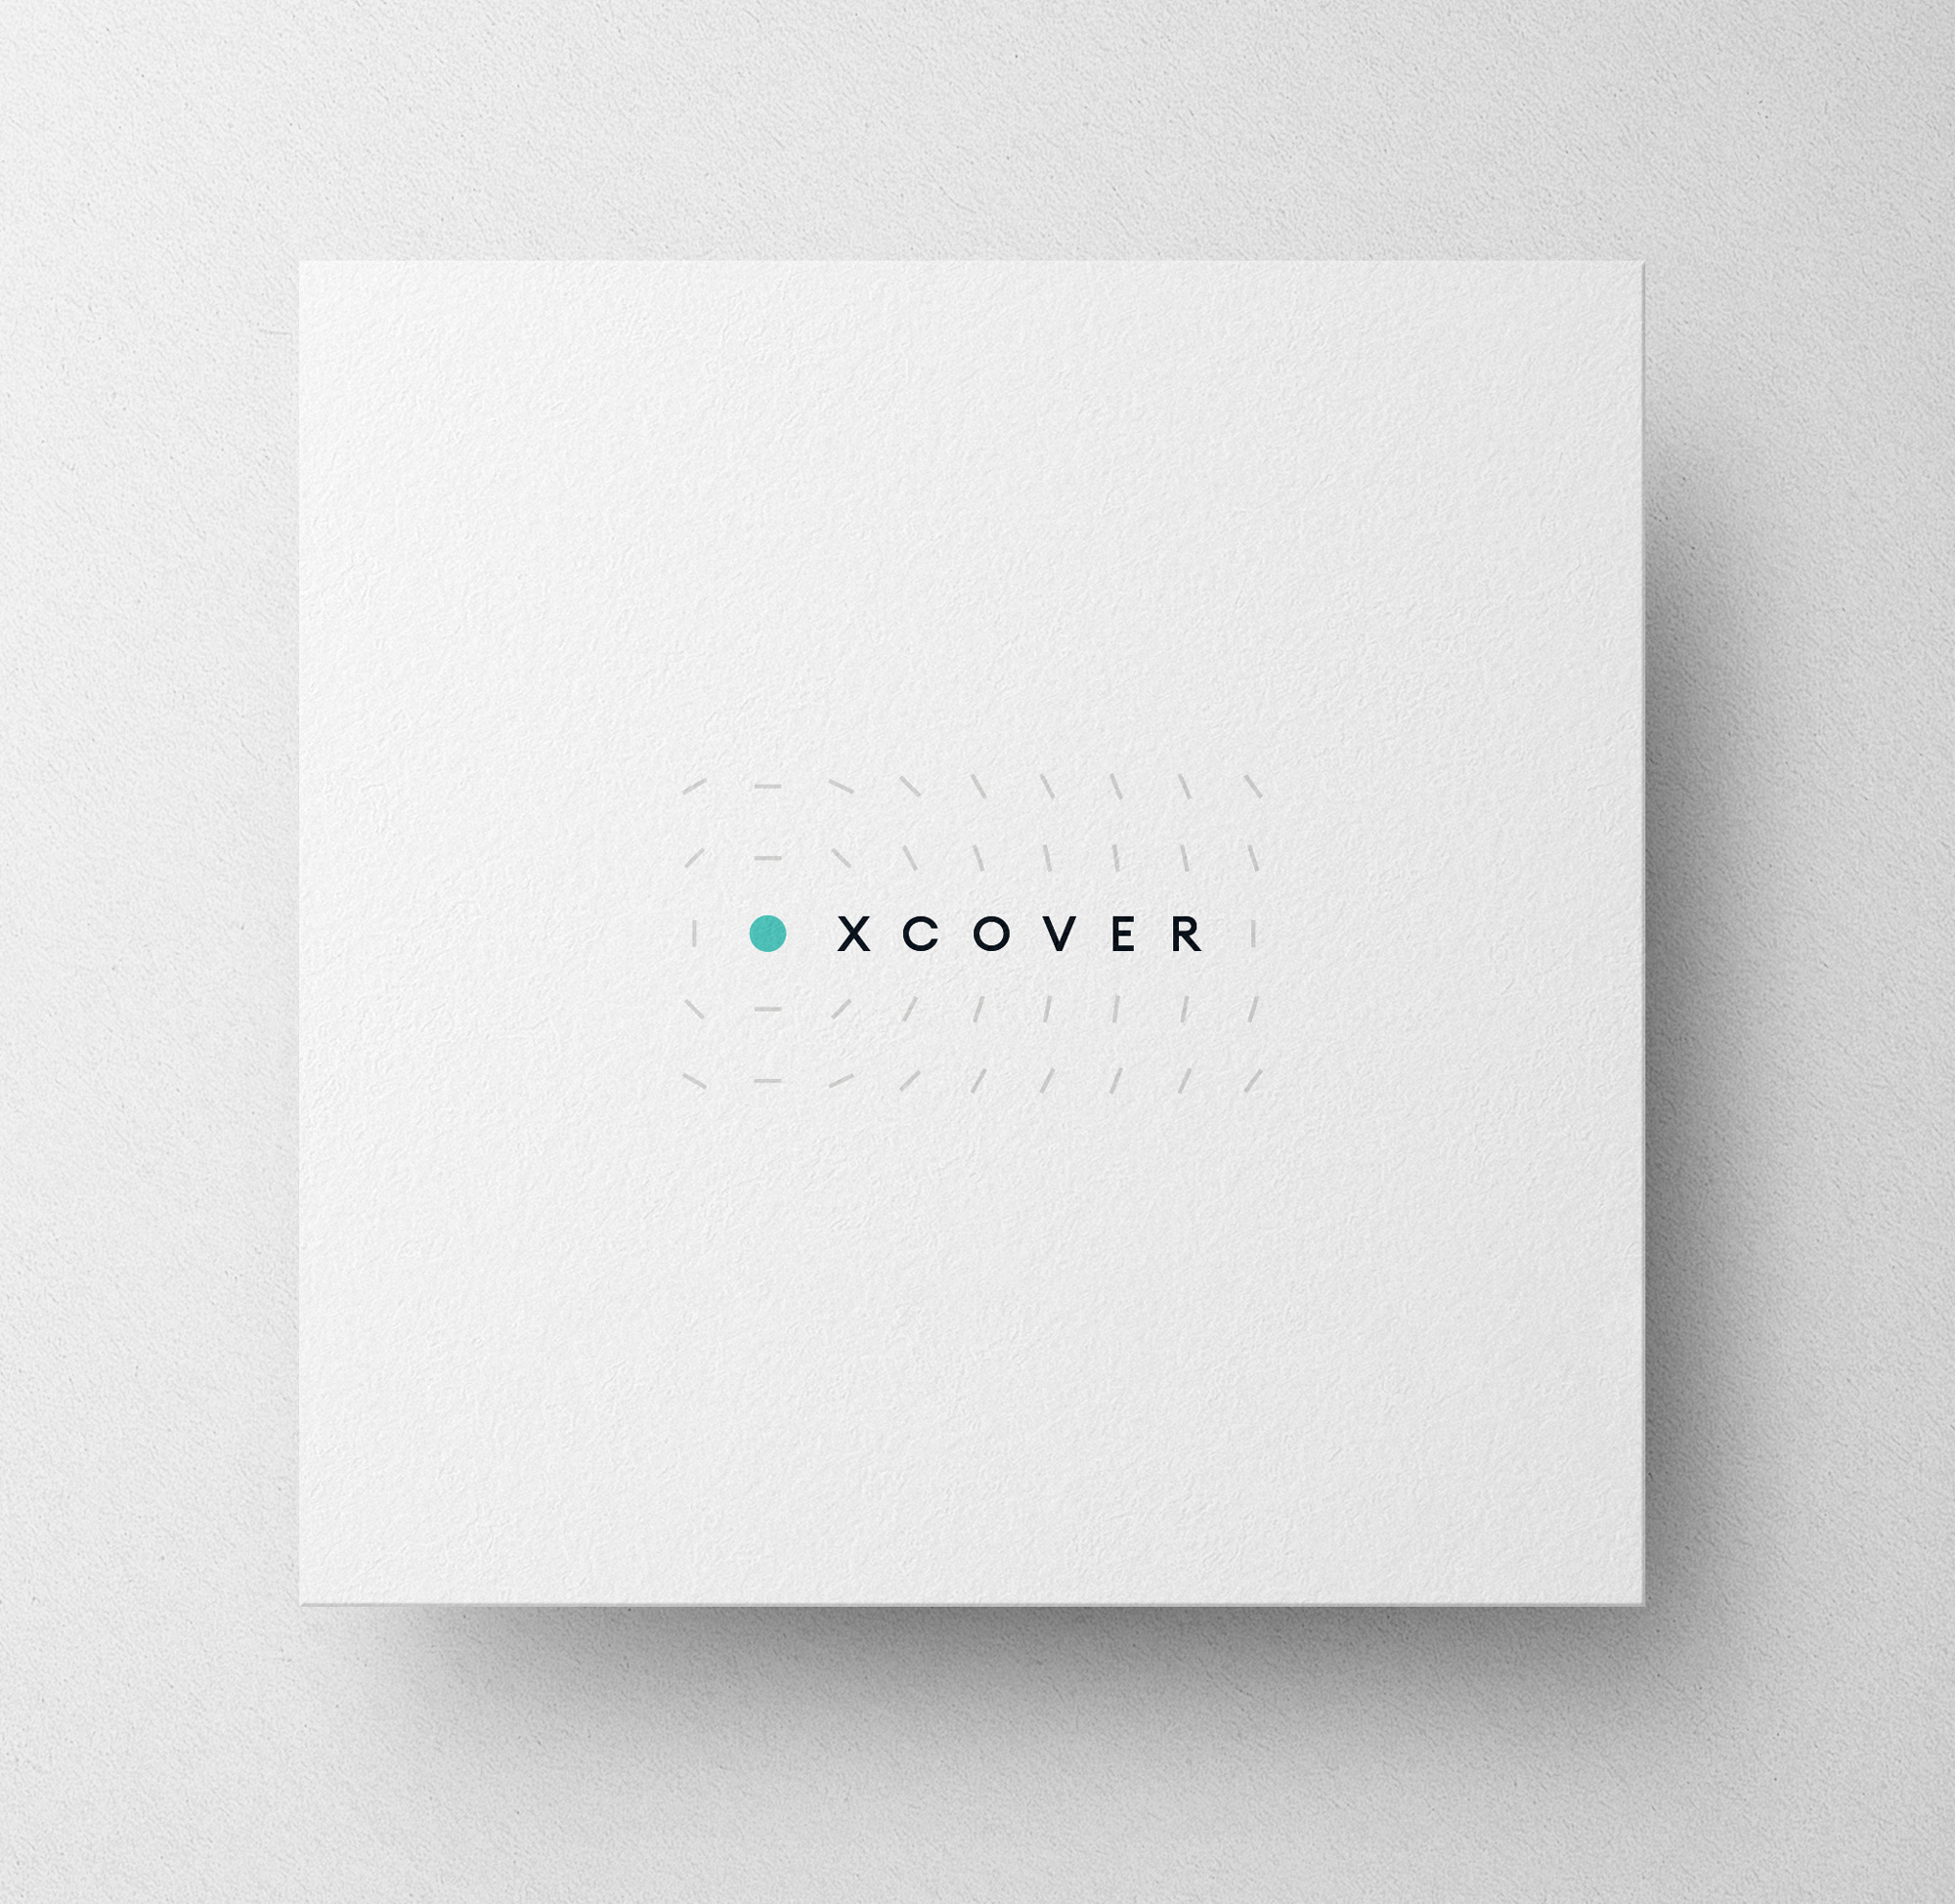 xcover_square_card